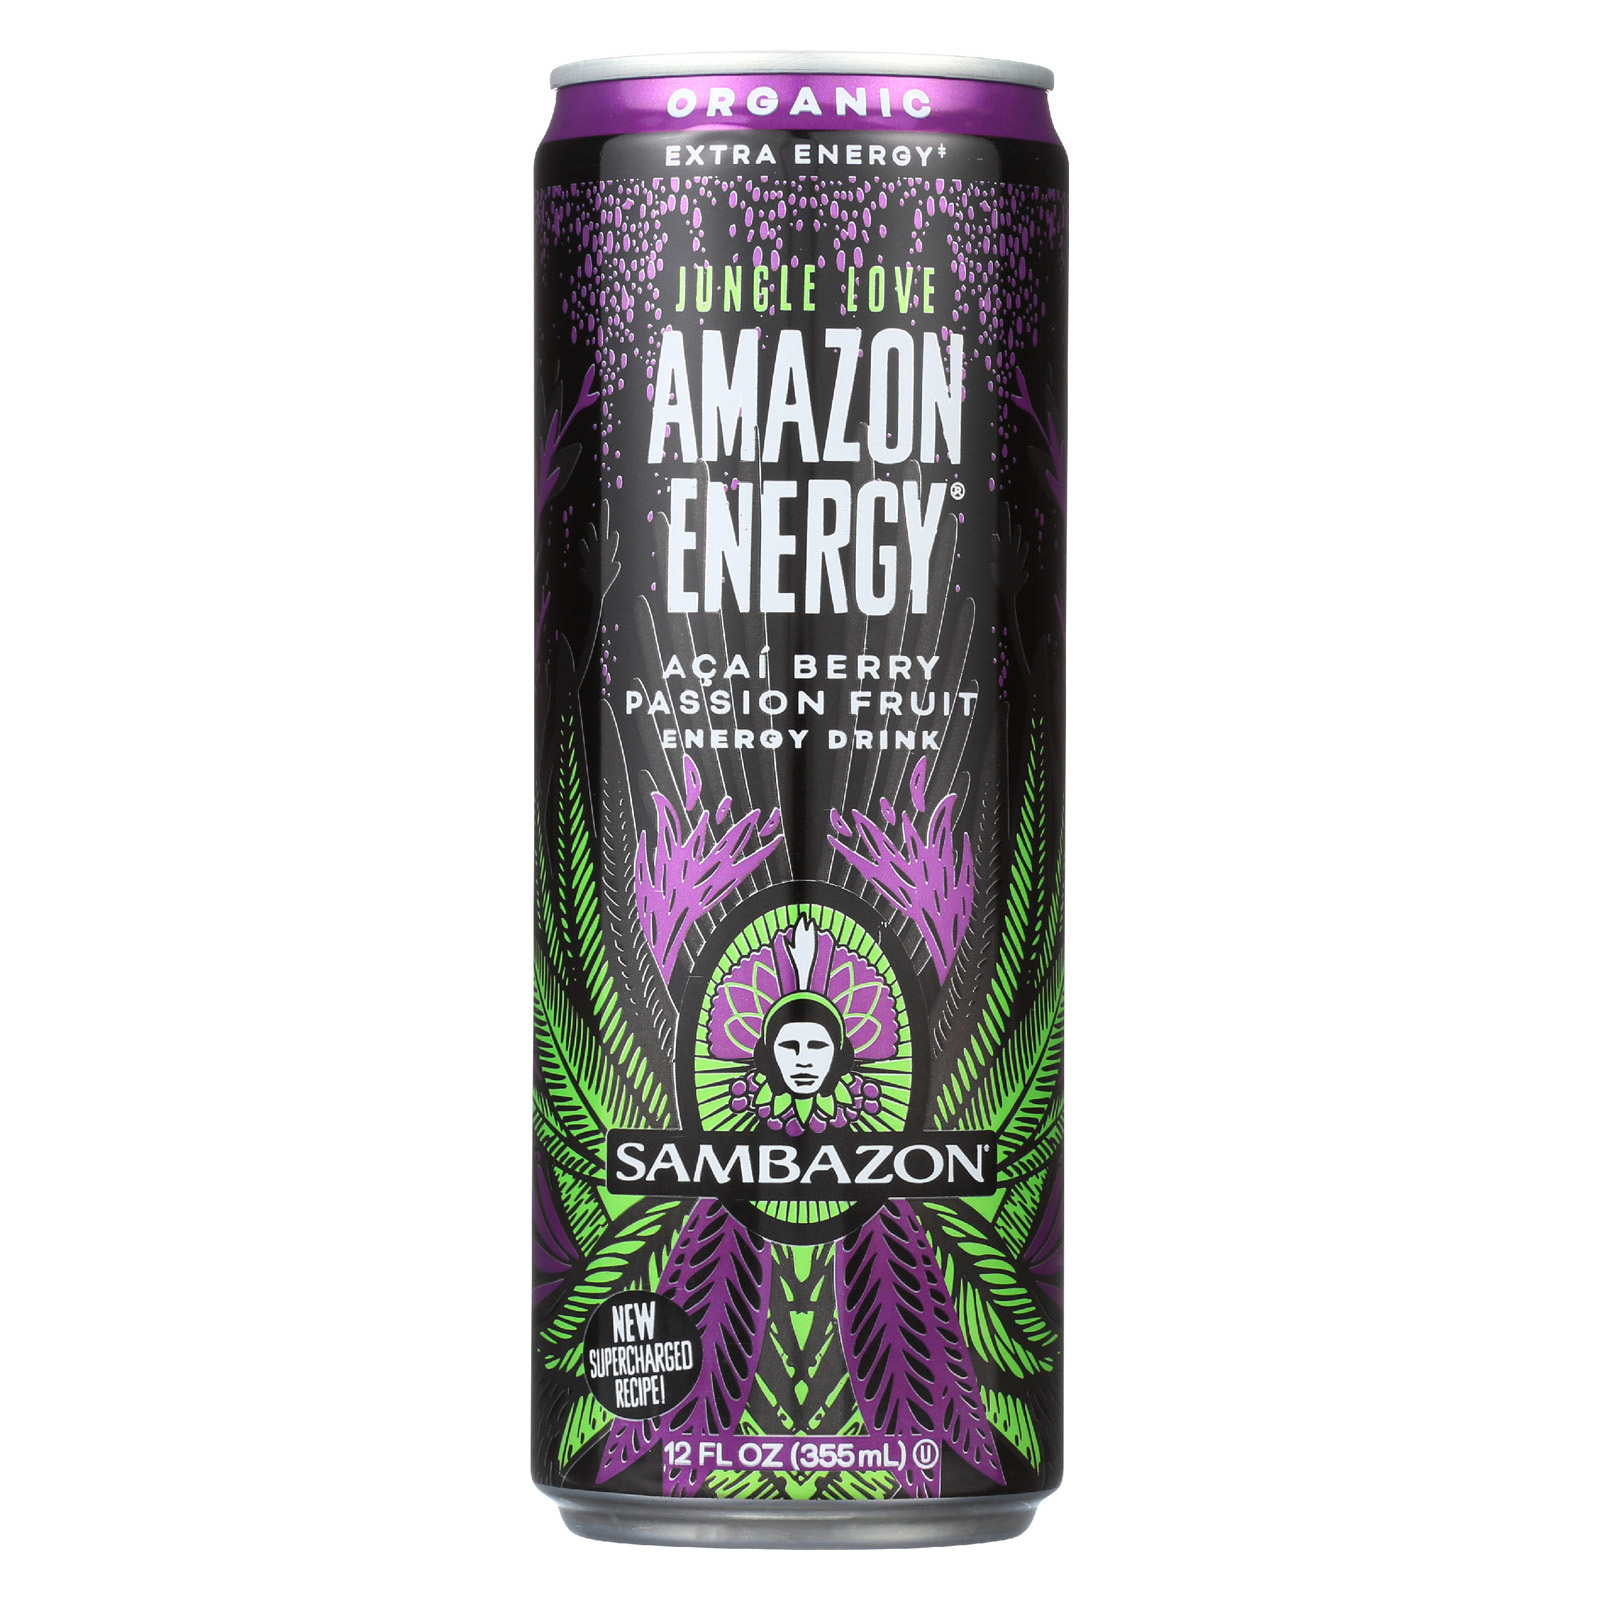 Sambazon Organic Amazon Energy Drink - Jungle Love - Case of 12 - 12 fl oz